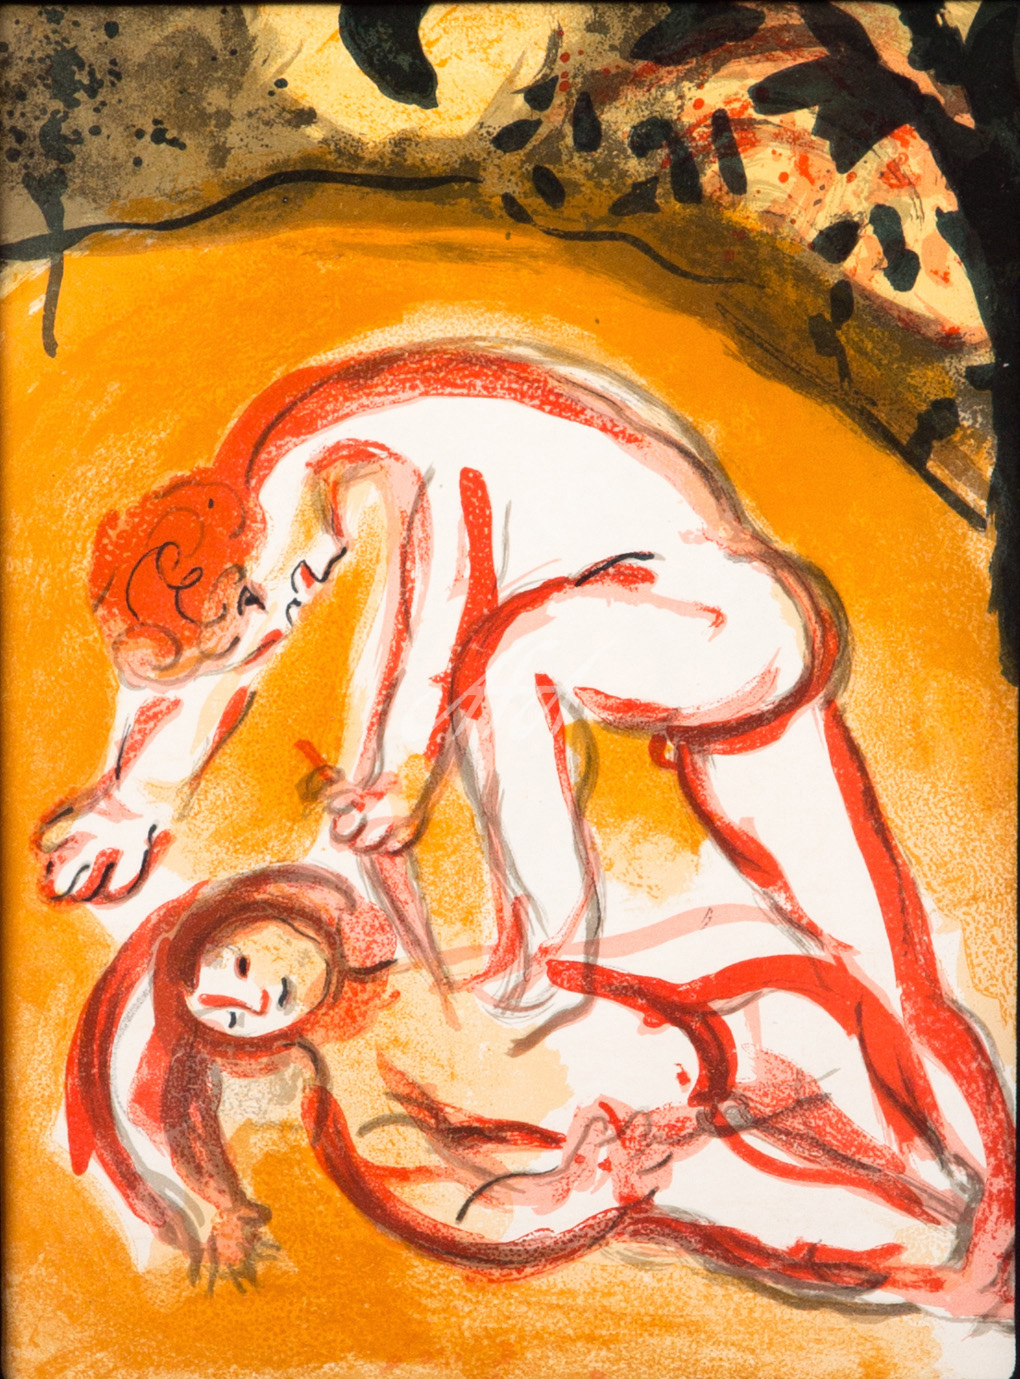 Marc_Chagall_knife1 LoRes watermark.jpg